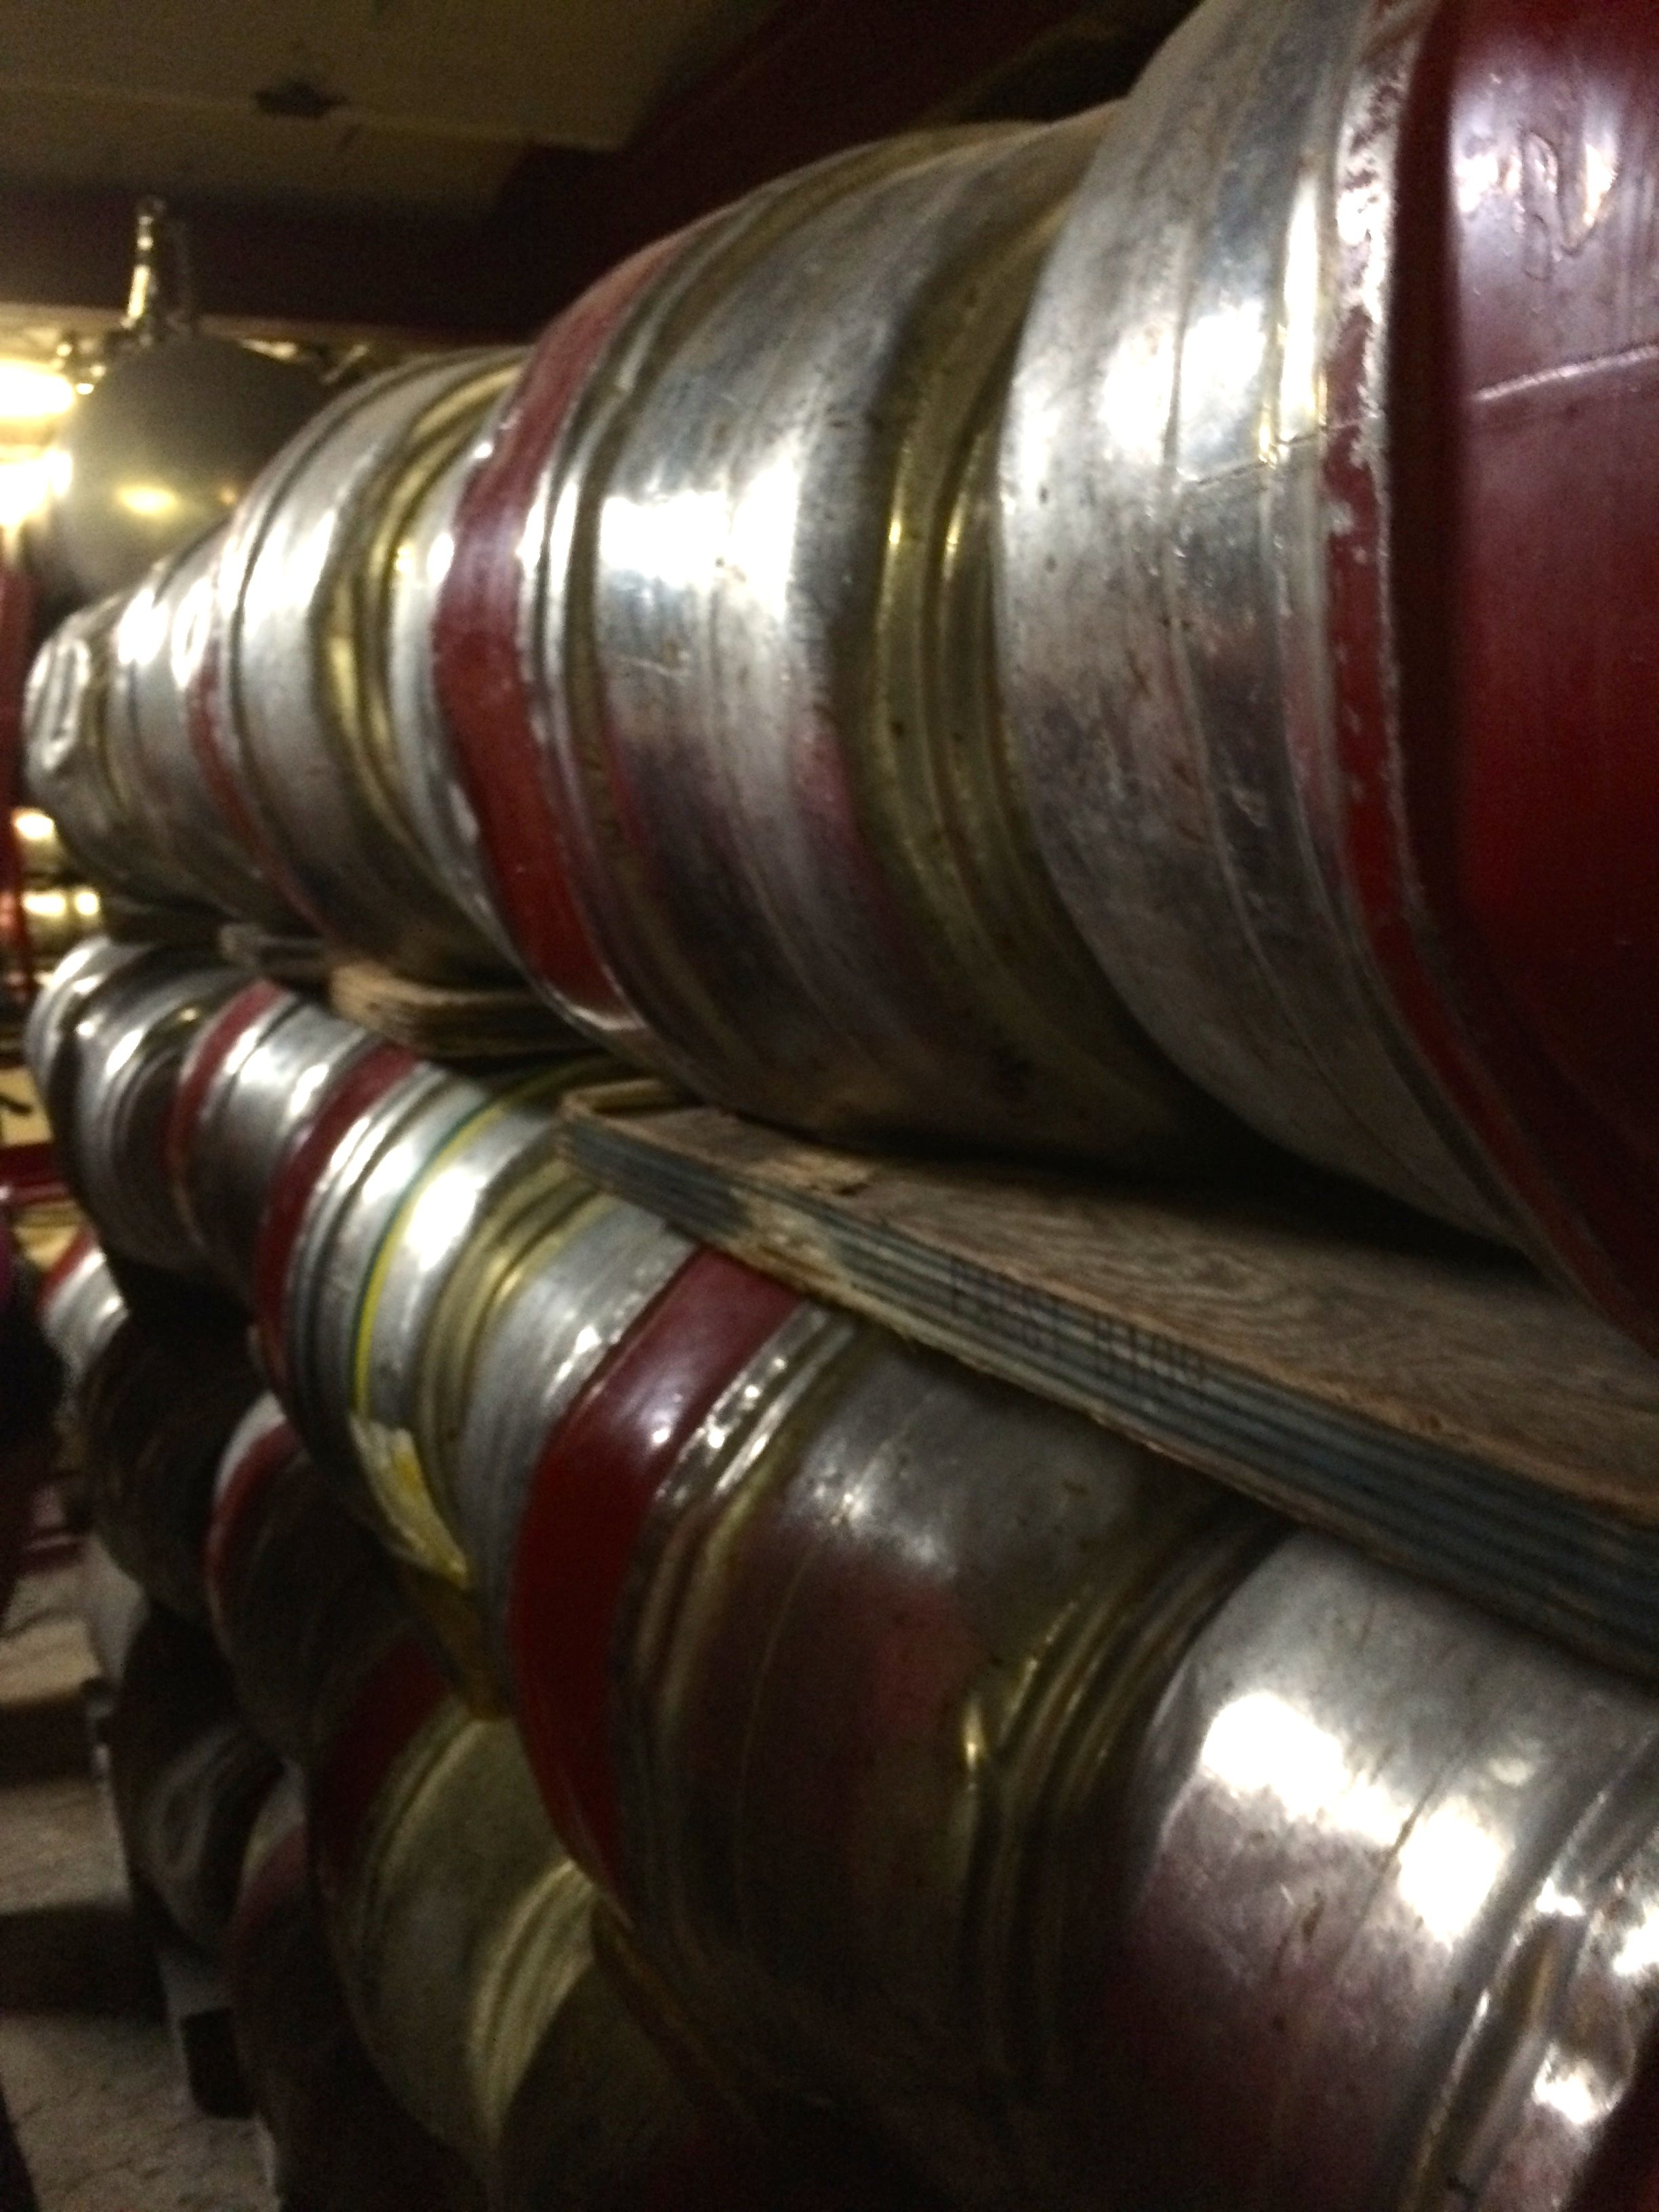 Racking room with old-style kegs